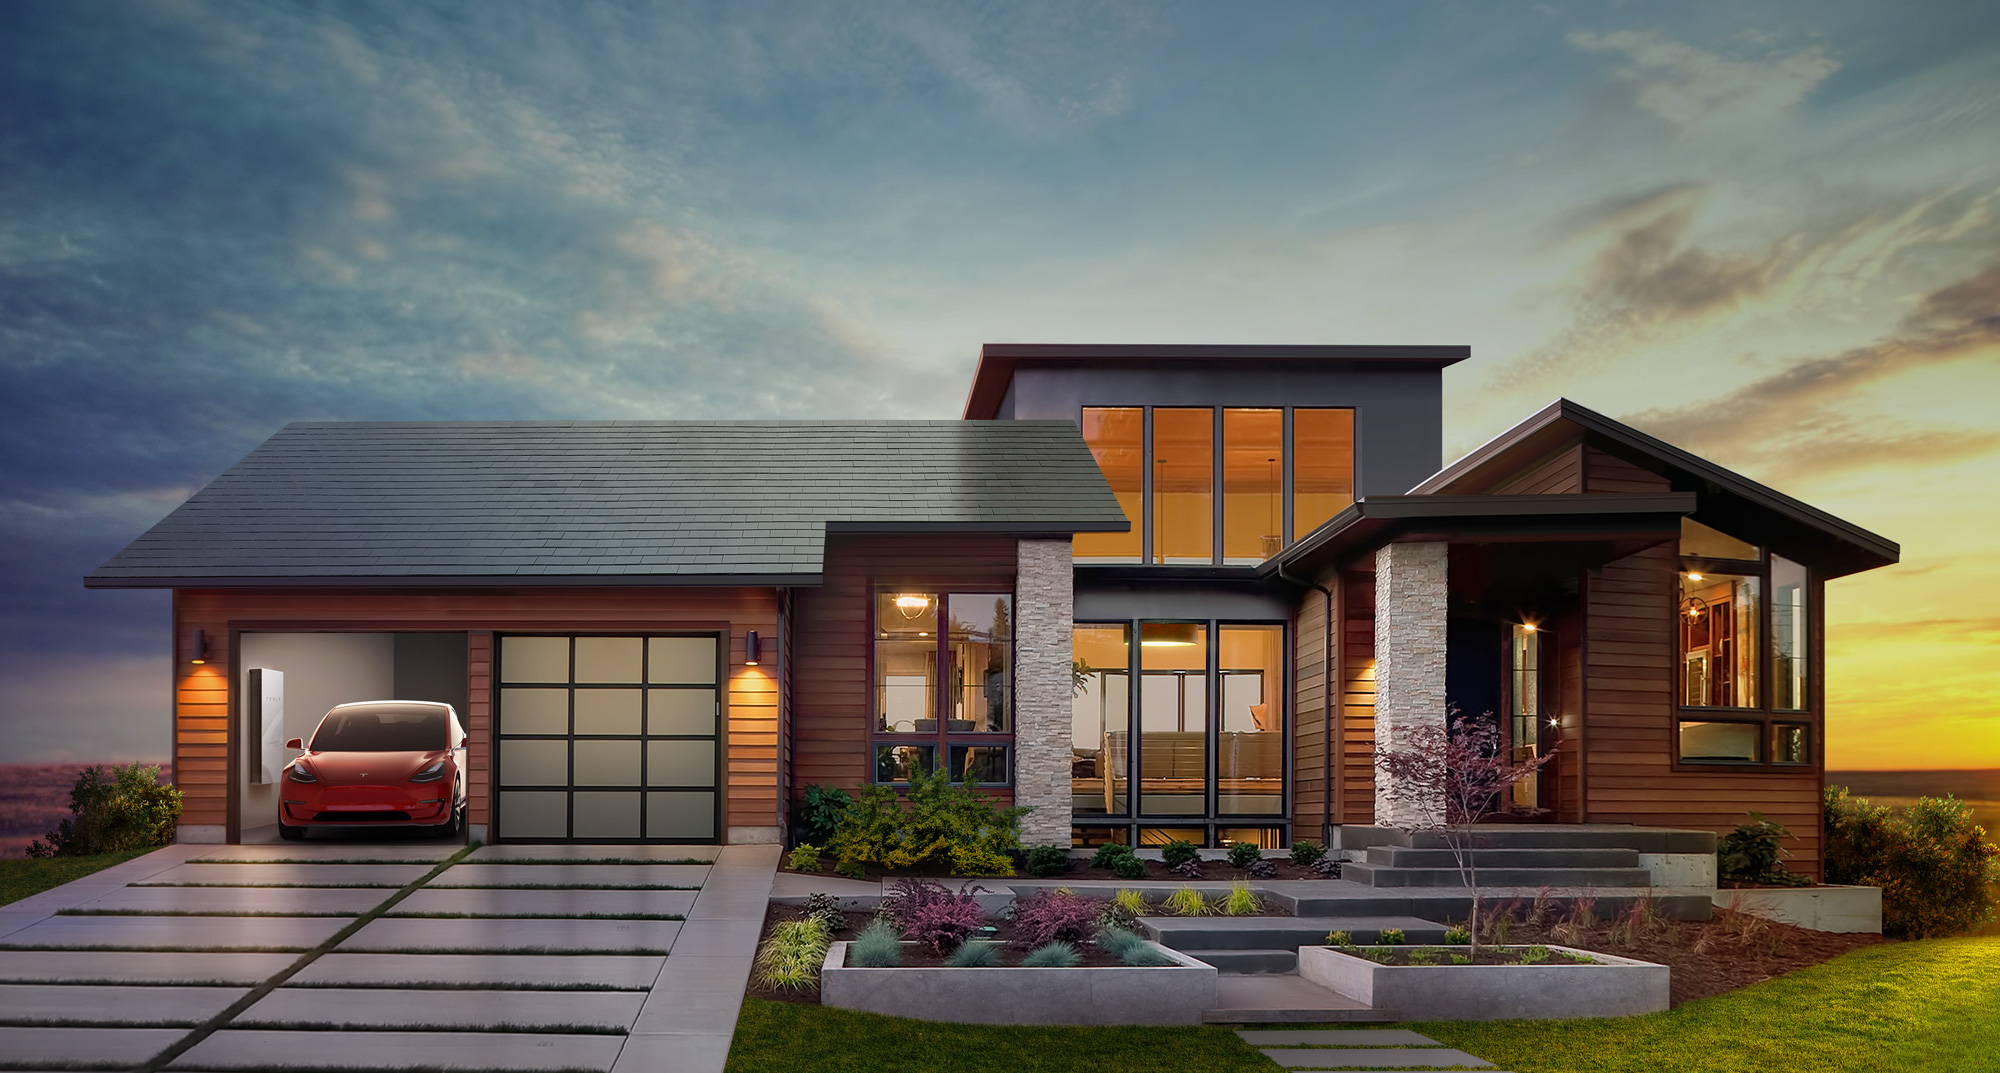 acquisition, tesla, solar panels, elon musk, solarcity, solar roof